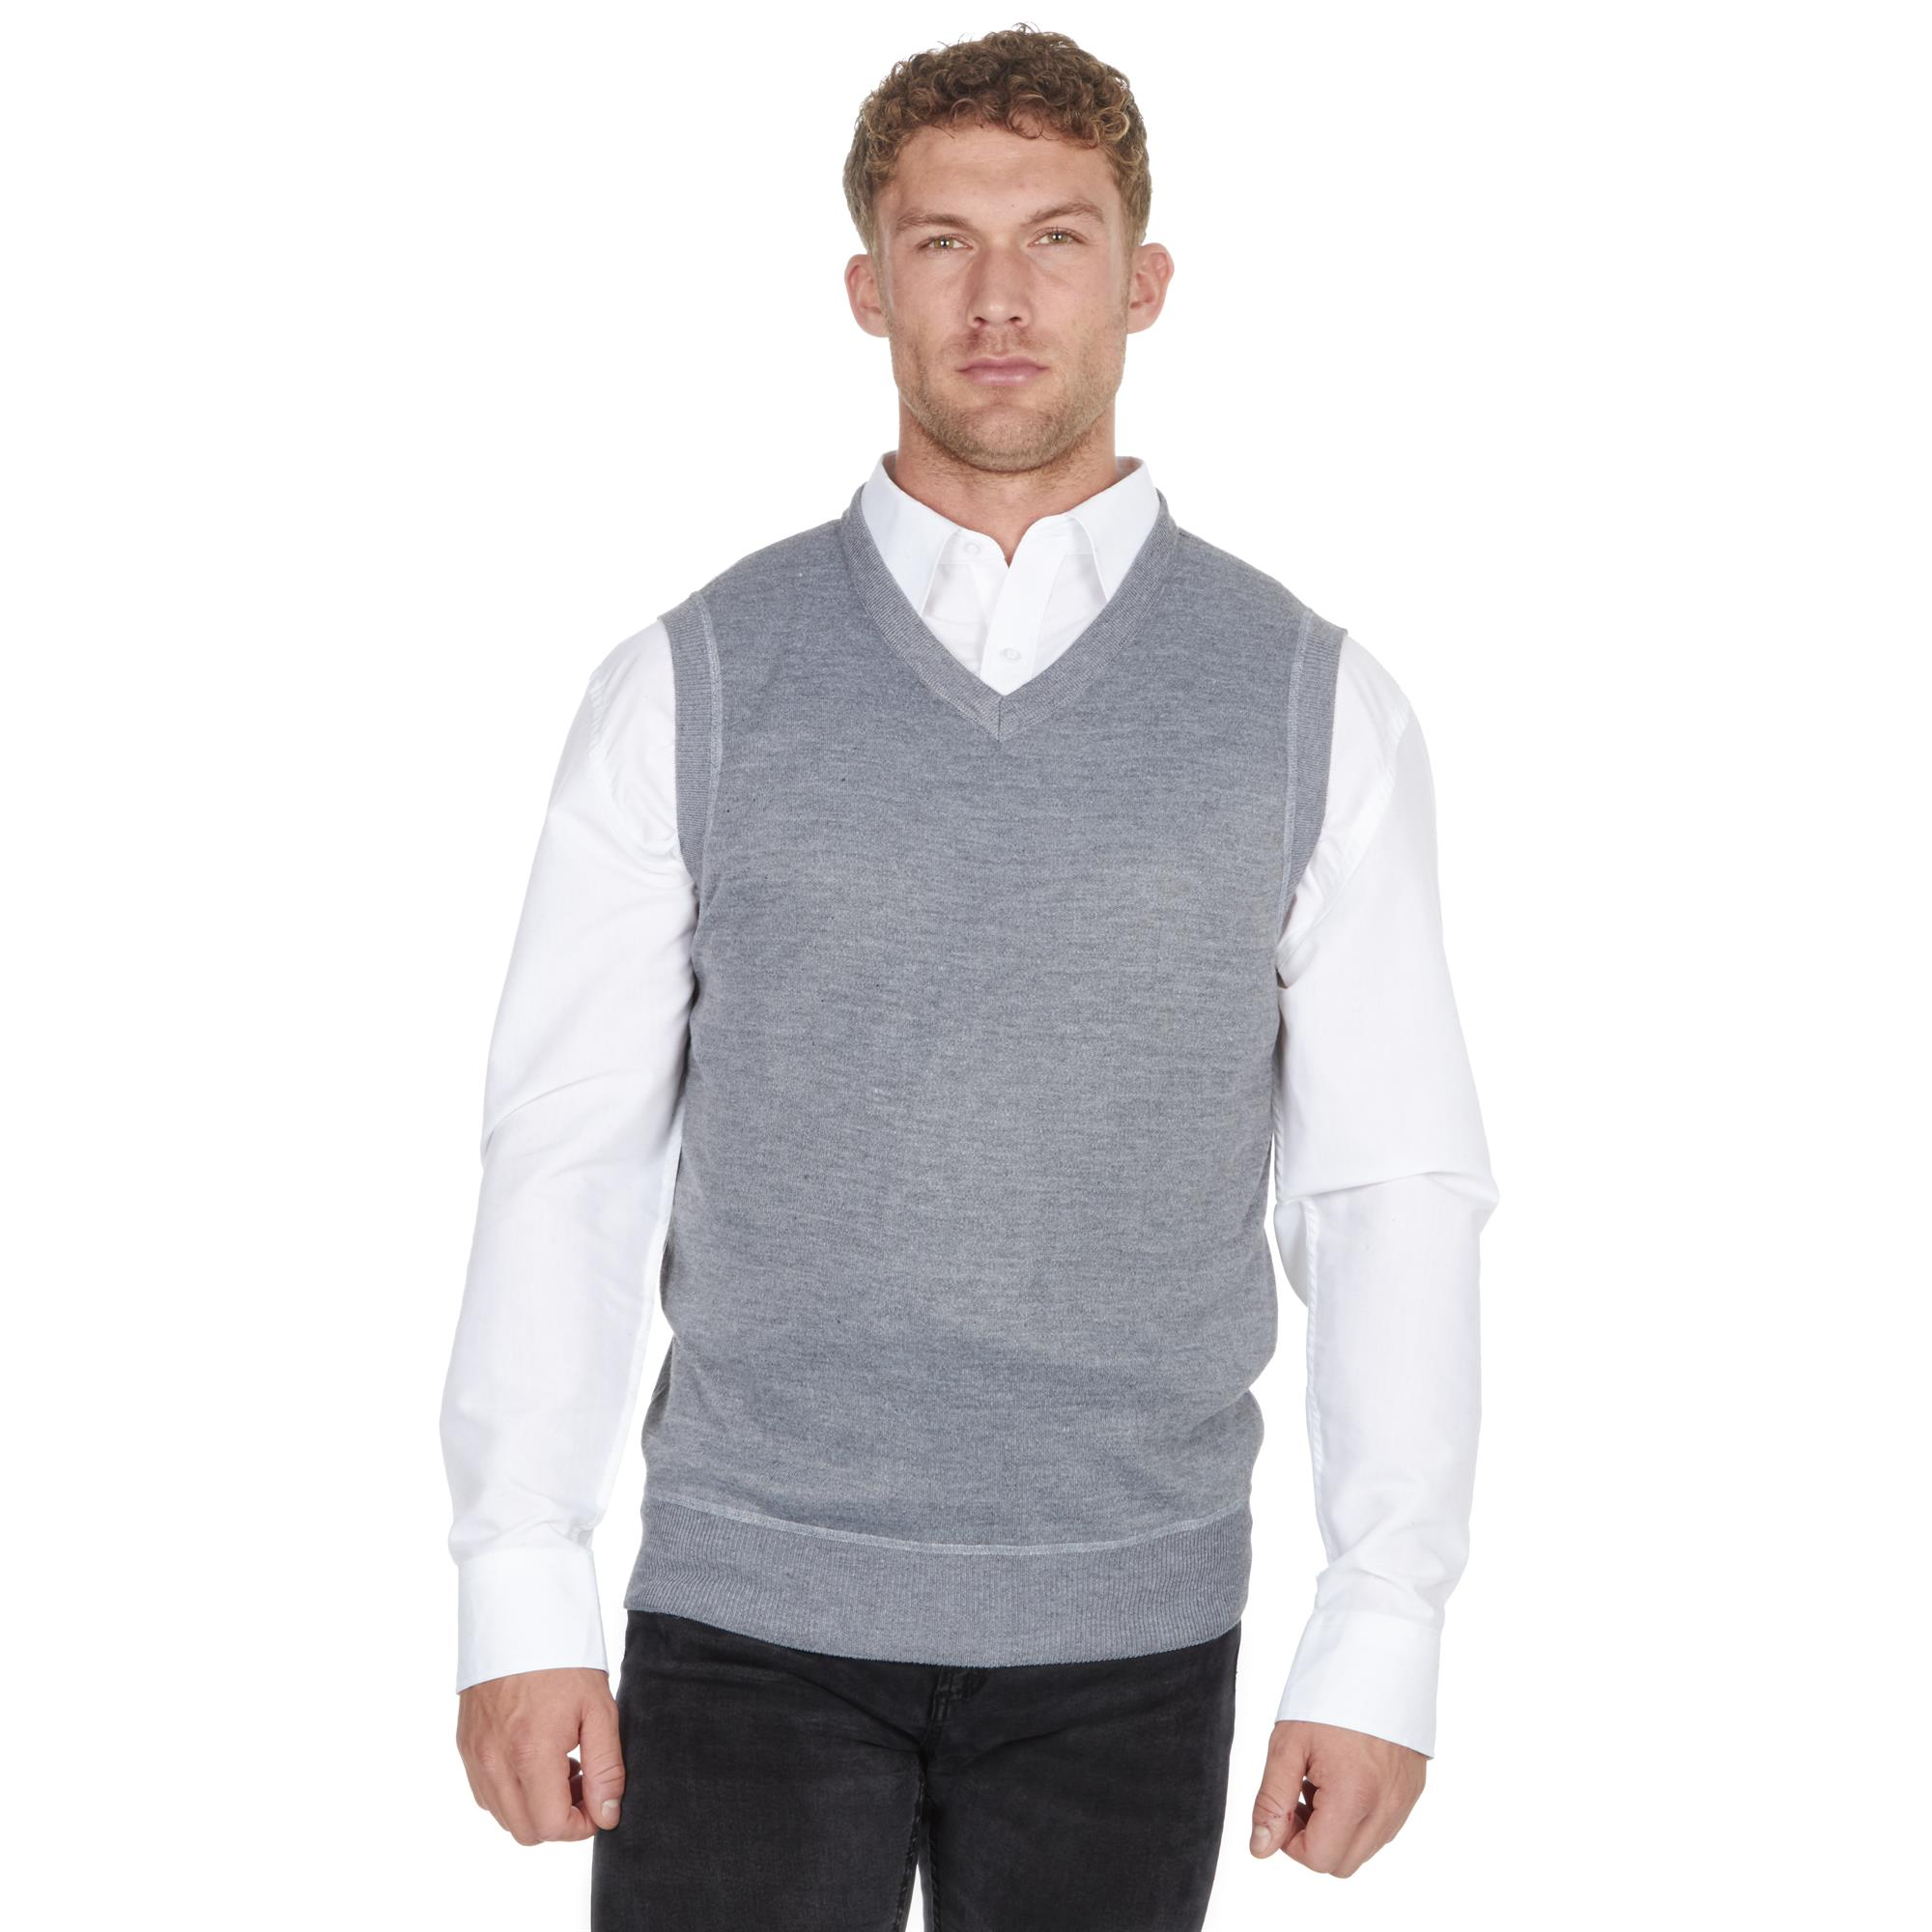 Pierre Roche Mens Plus Size Sleeveless Knitted Tank Top Jumper